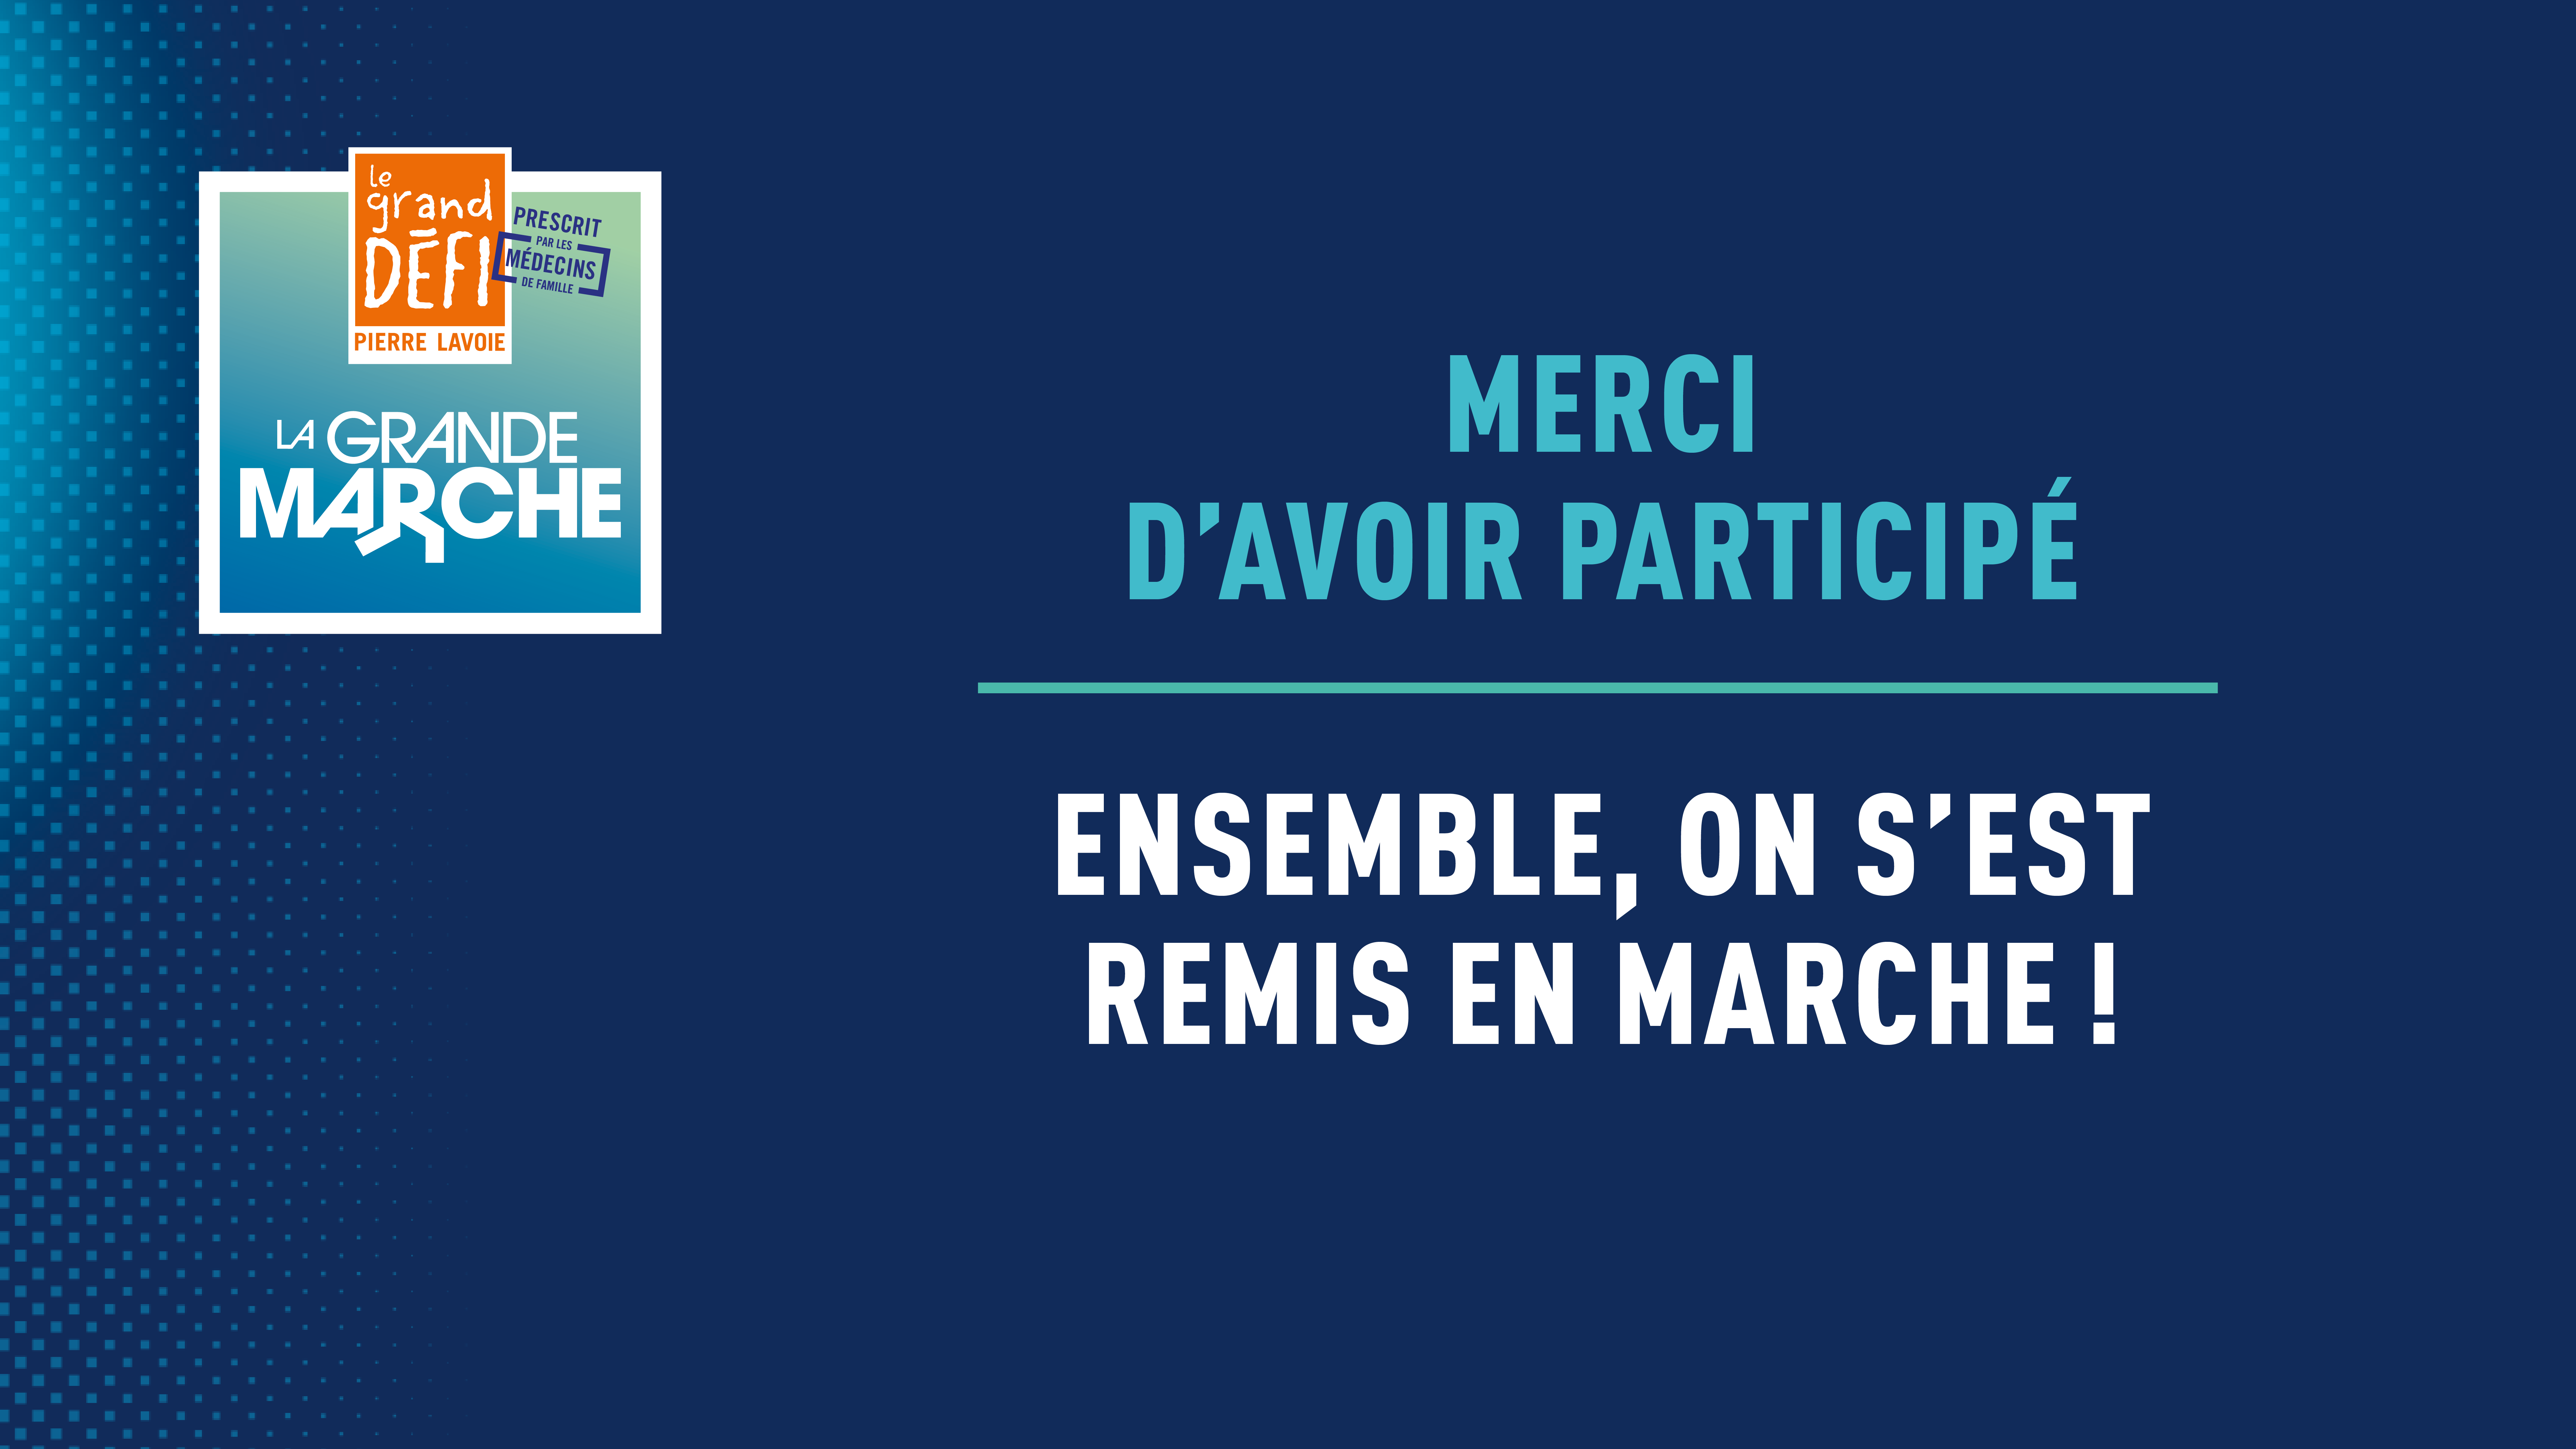 La Grande marche - Ensemble, on s'est remis en marche